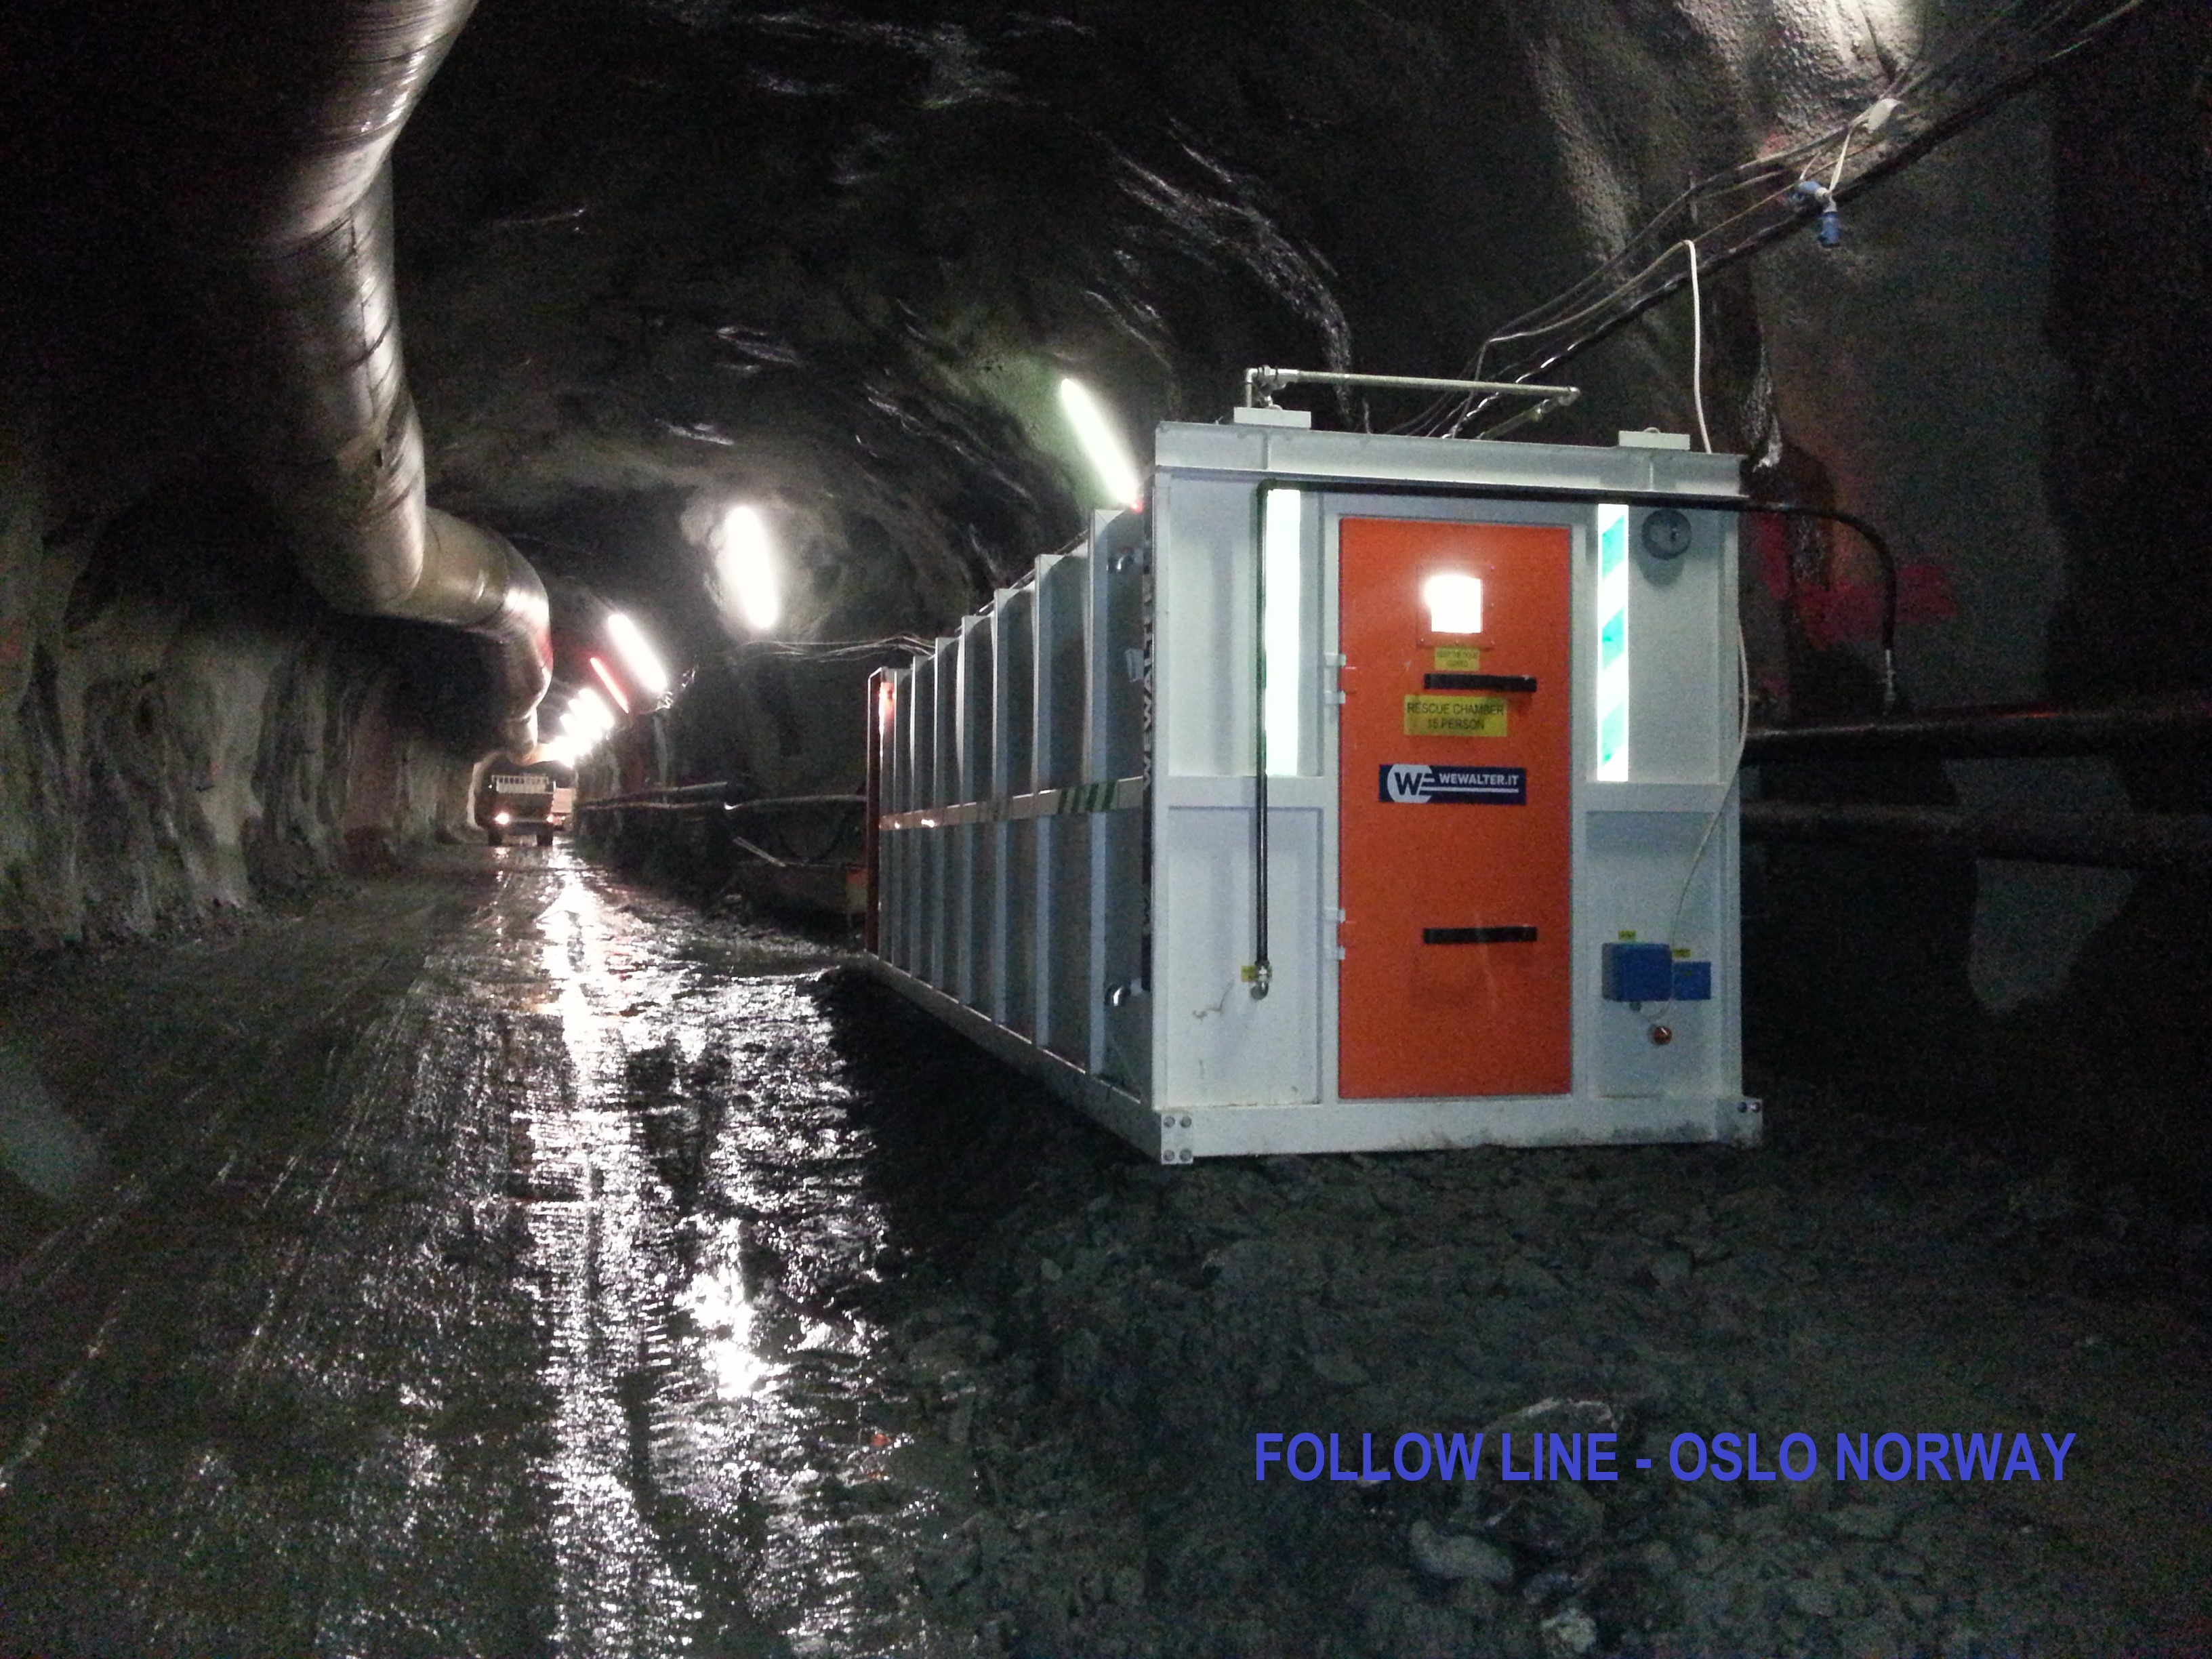 WE Walter Srl  refuge chamber engeenered for follow line Oslo, Norway